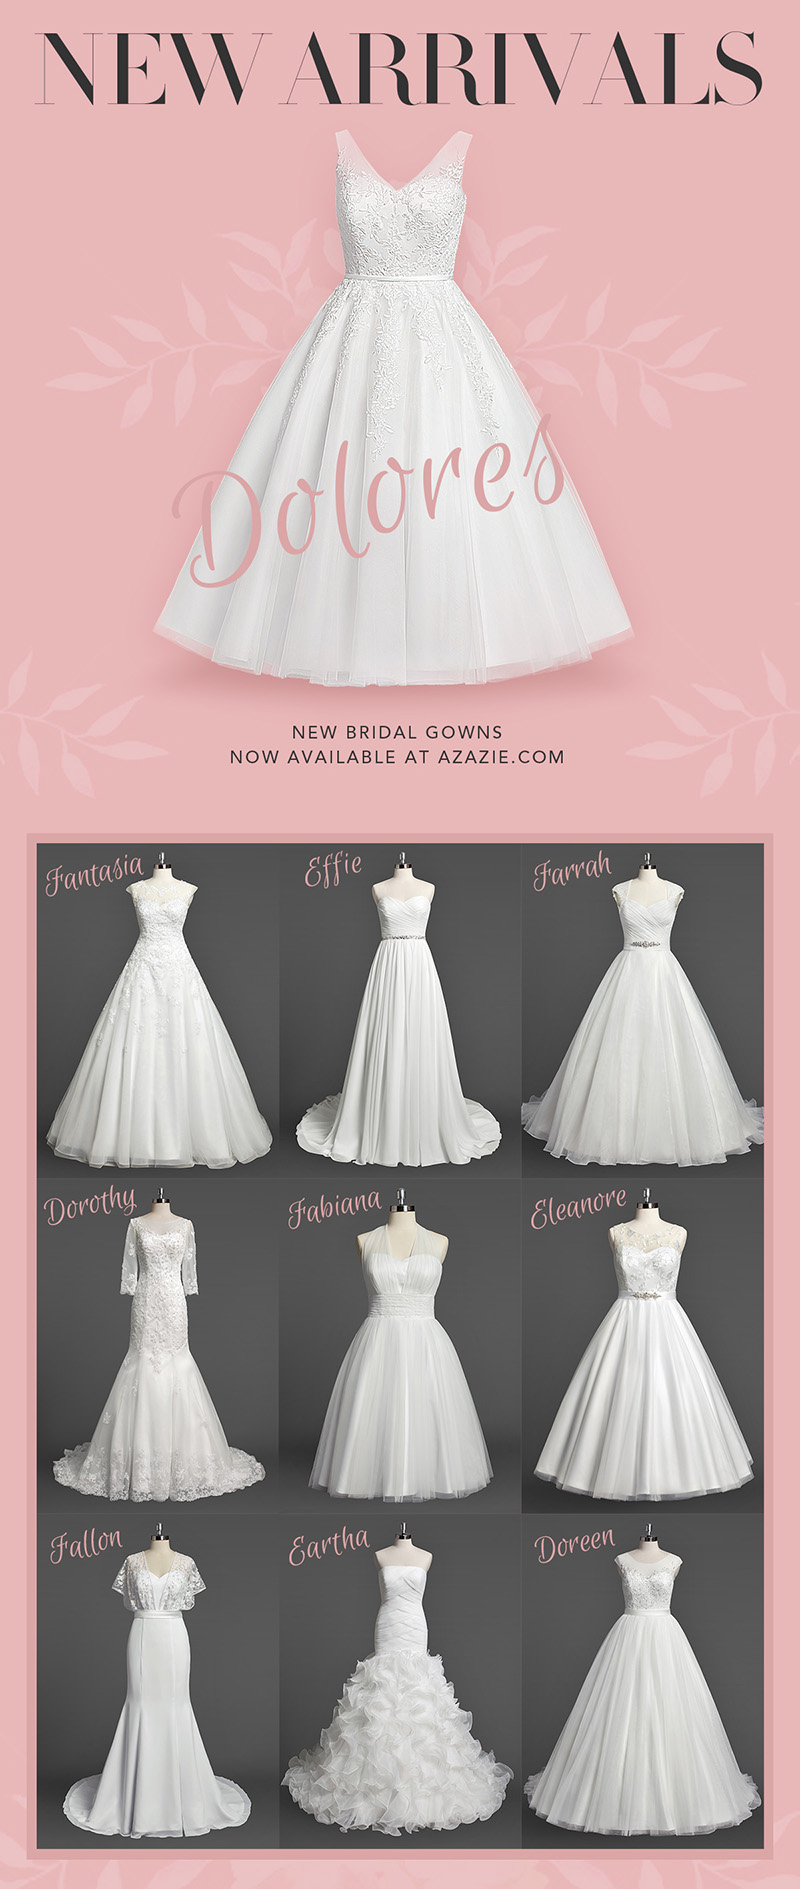 New Arrivals: Wedding Dresses to Swoon For! | Azazie | Blog